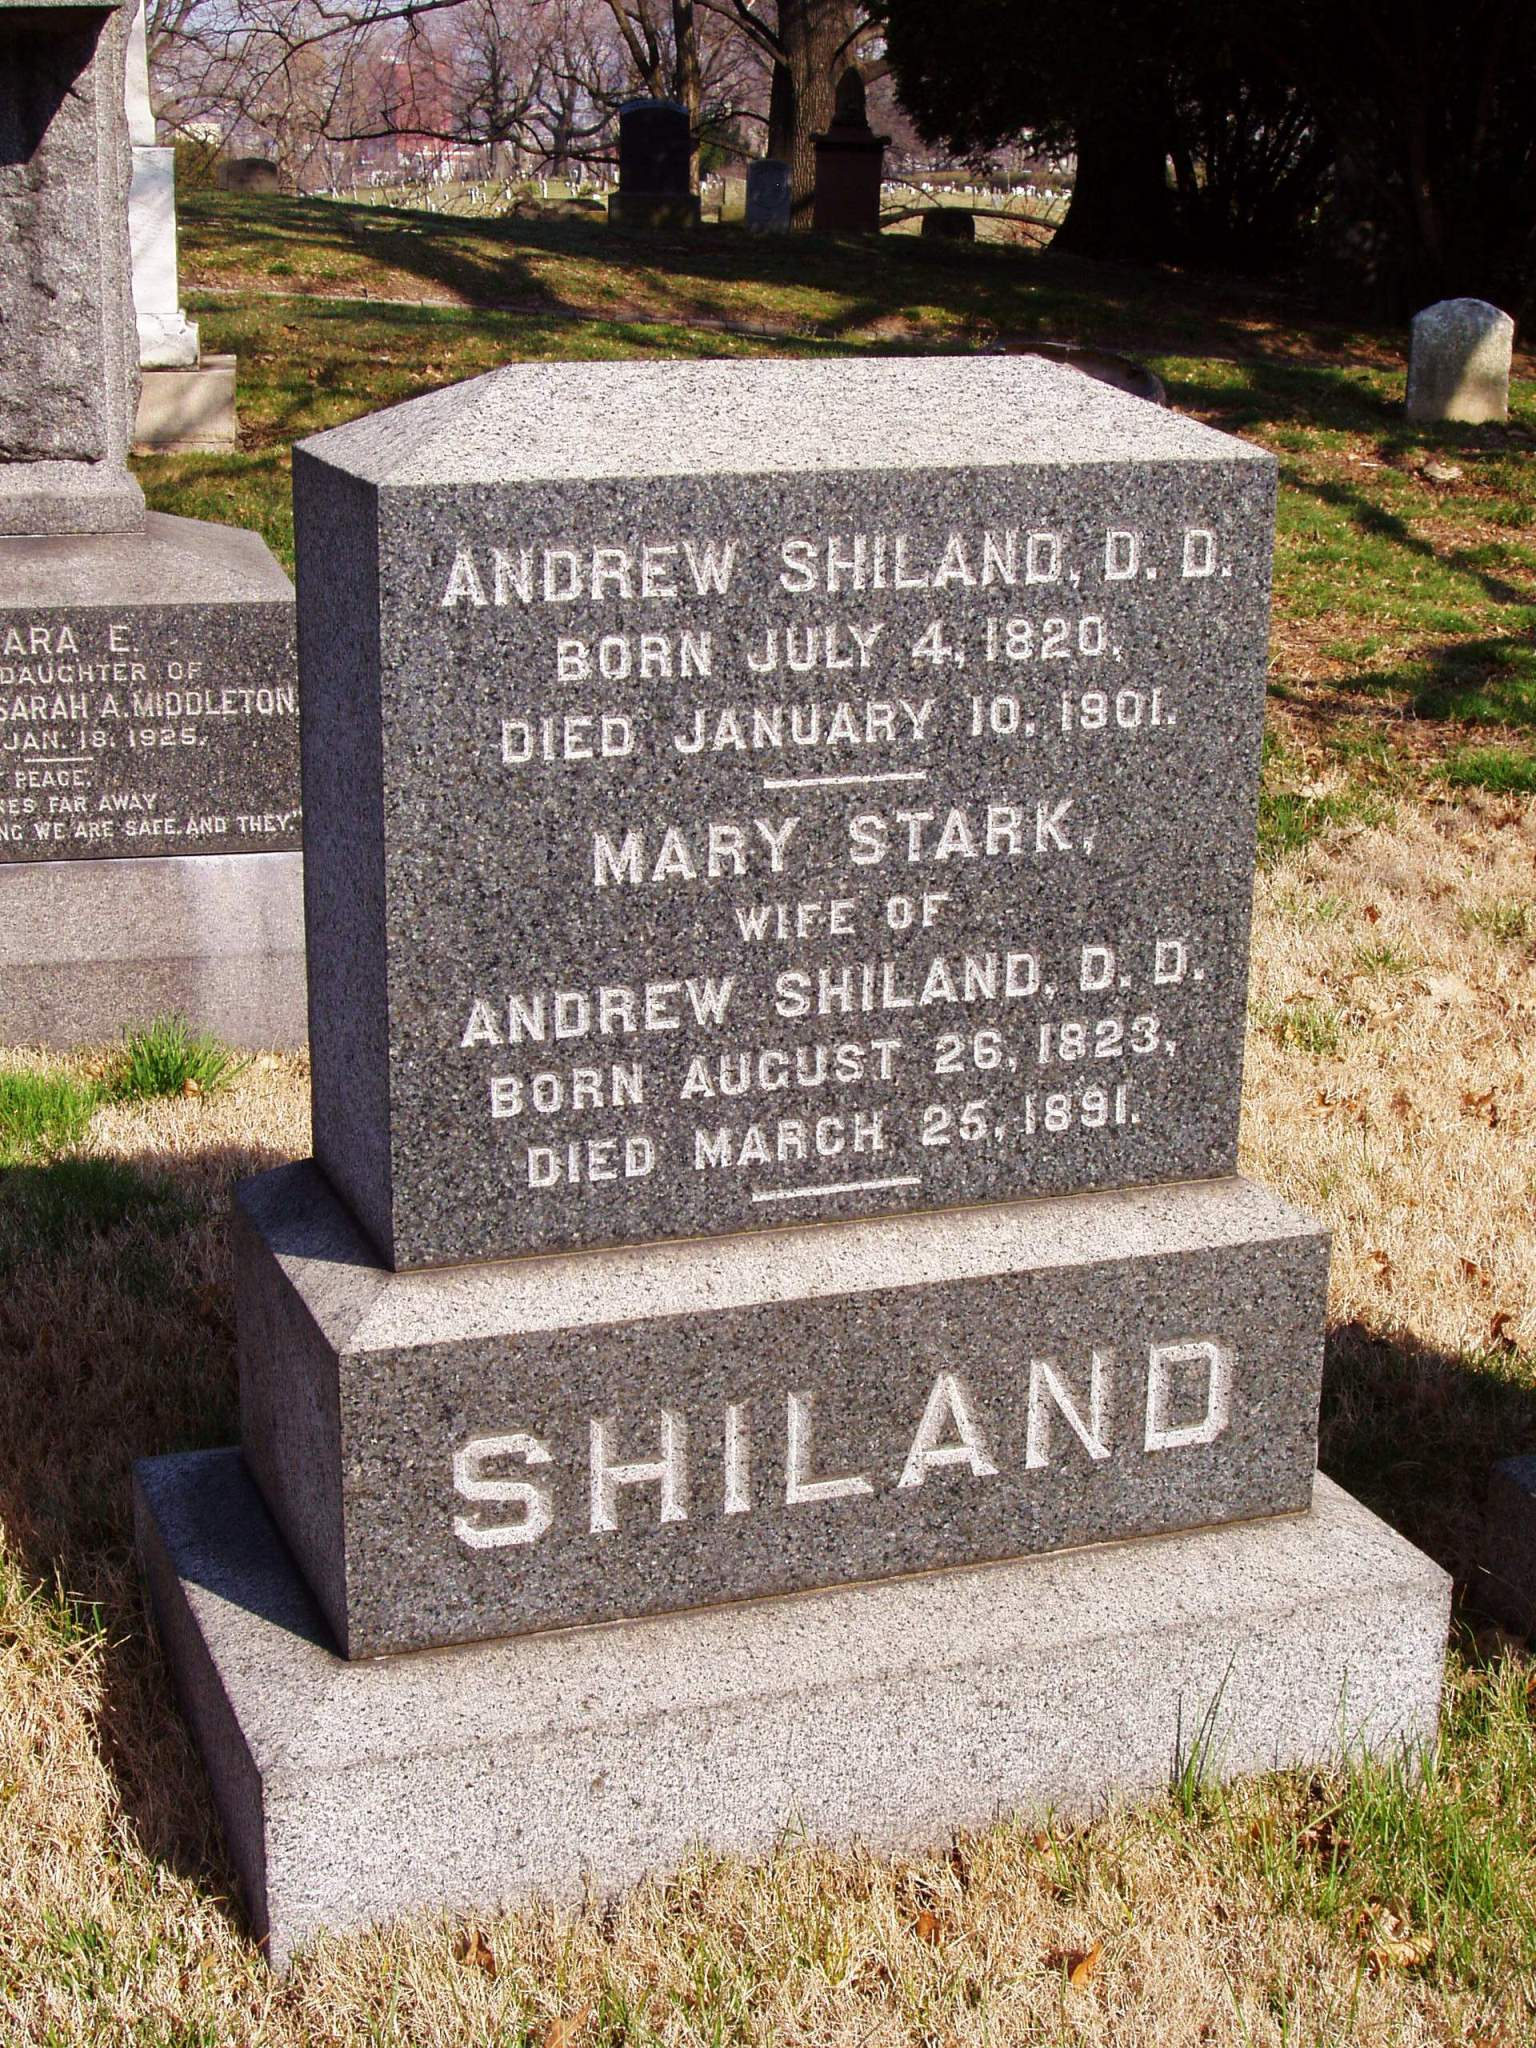 Andrew Shiland is buried at Green-Wood Cemetery, Brooklyn, New York.